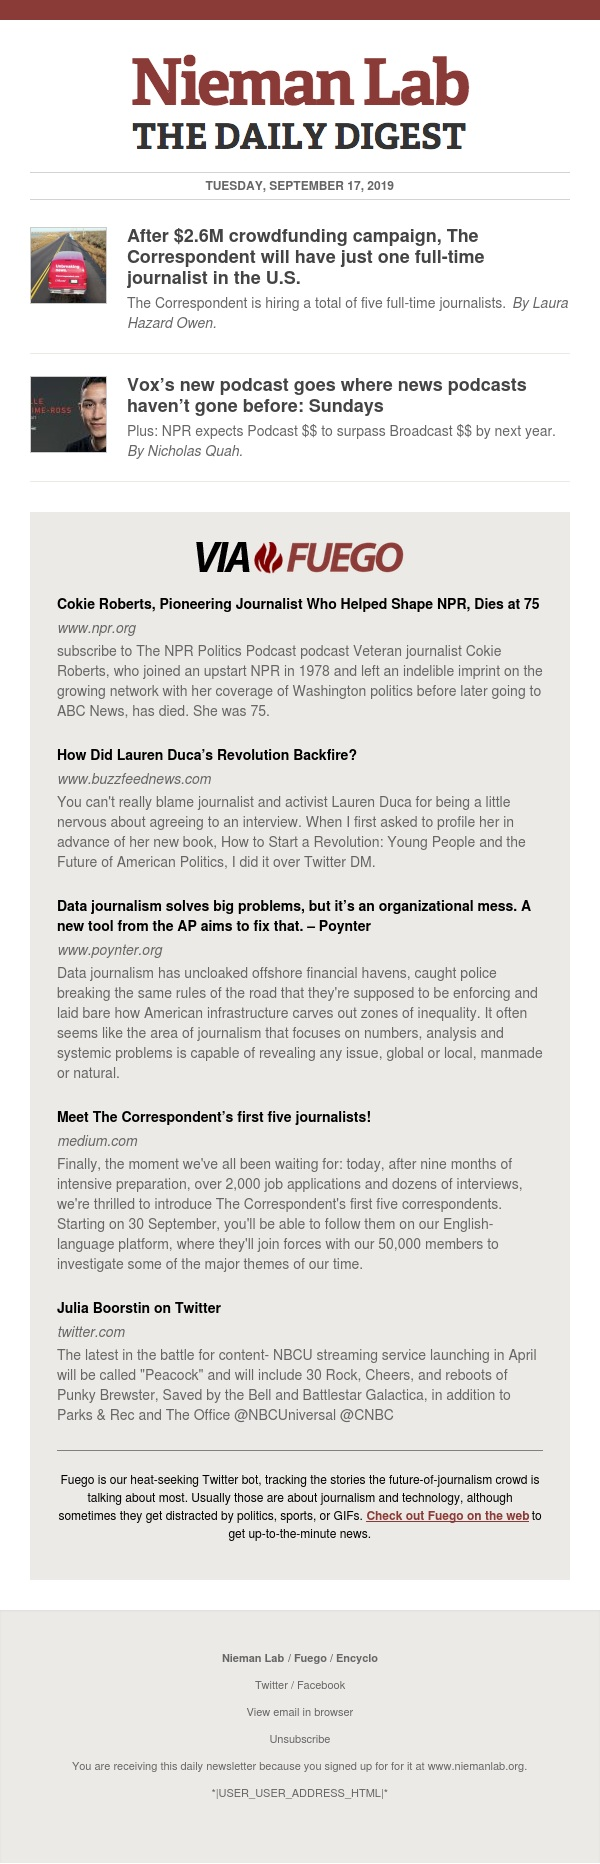 After $2.6M crowdfunding campaign, The Correspondent will have just one full-time journalist in the U.S.: The latest from Nieman Lab